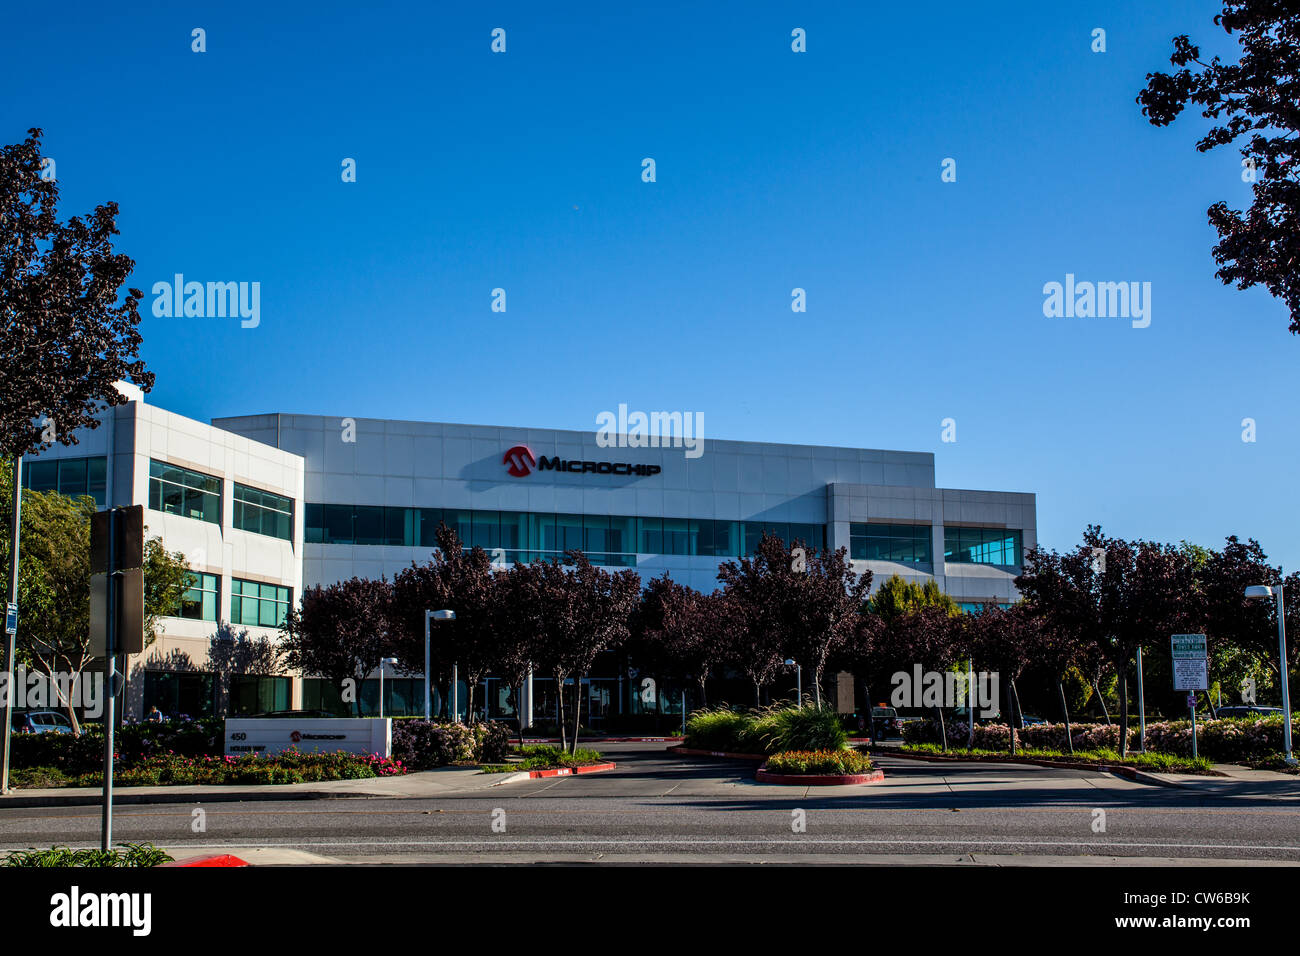 Microchip Technology Inc building in Silicon Valley